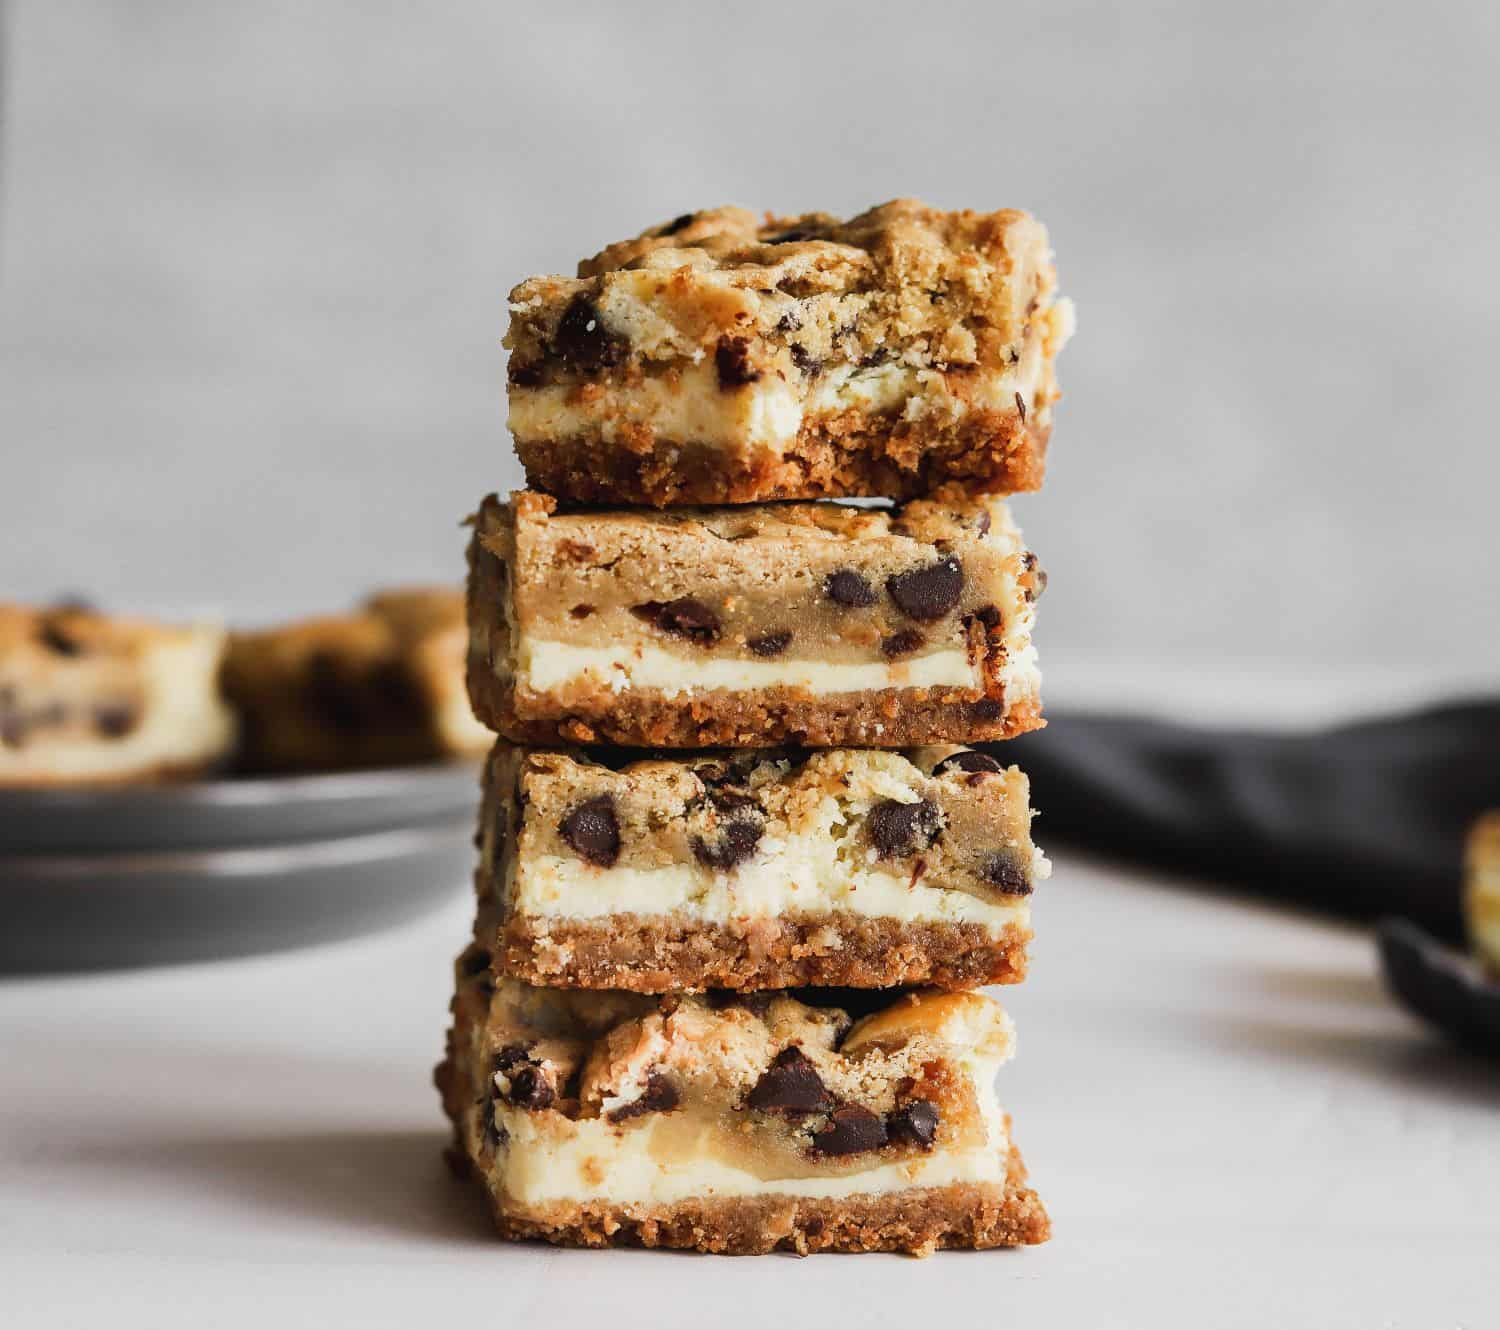 Cookie dough cheesecake bars stacked 4 tall with a bite missing.